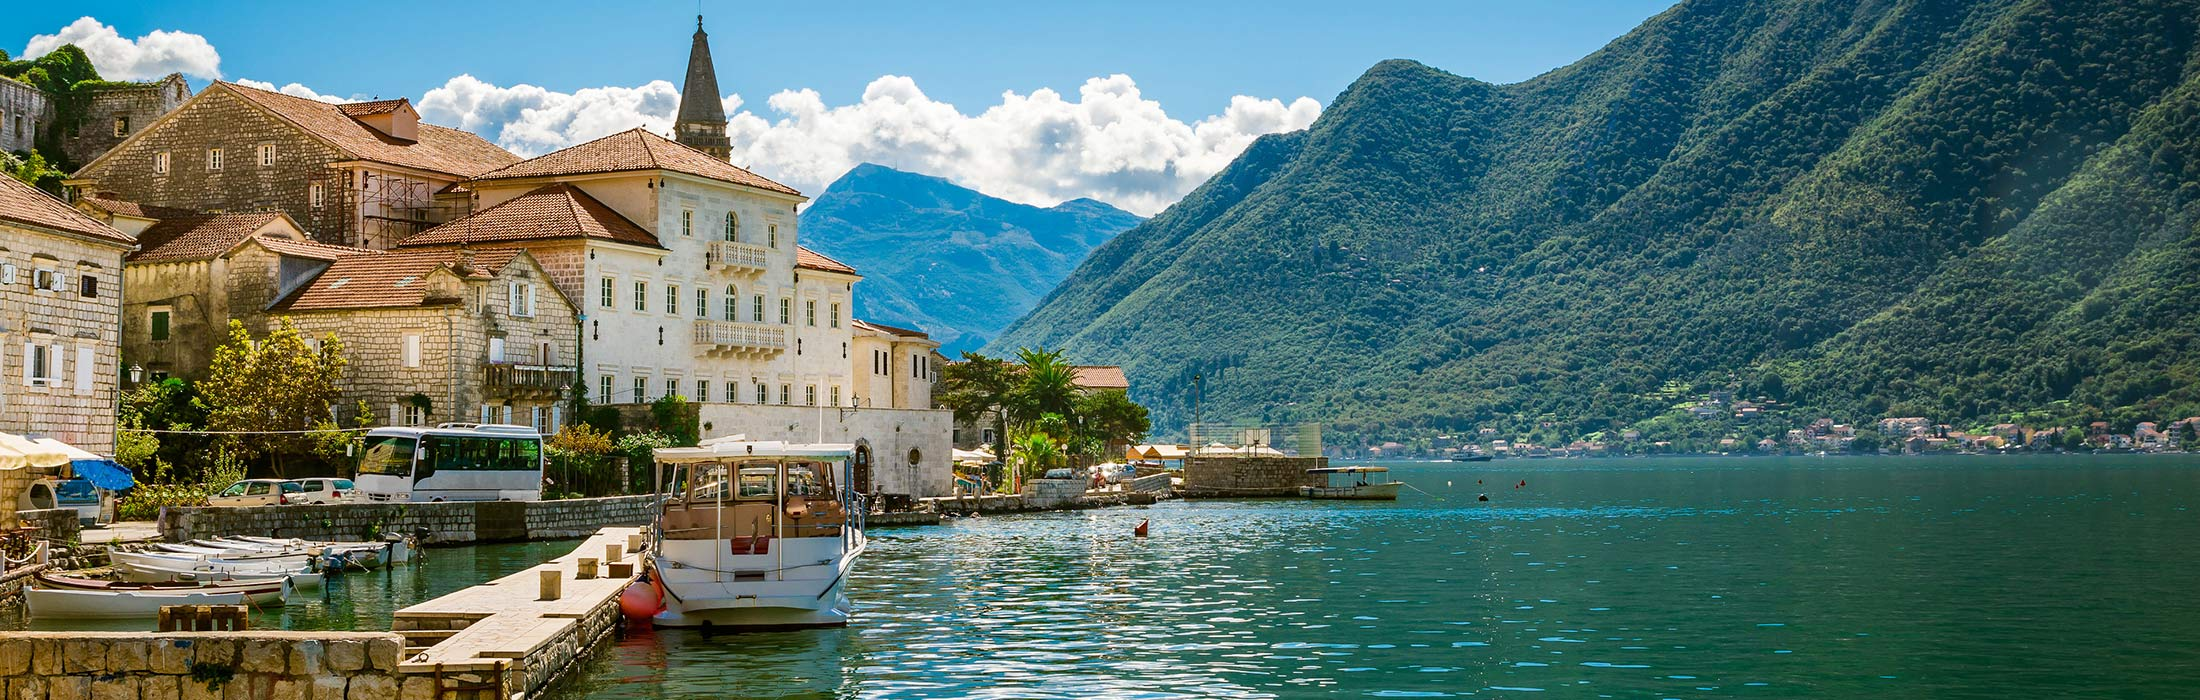 top yacht charter destinations adriatic sea montenegro kotor main slider 2